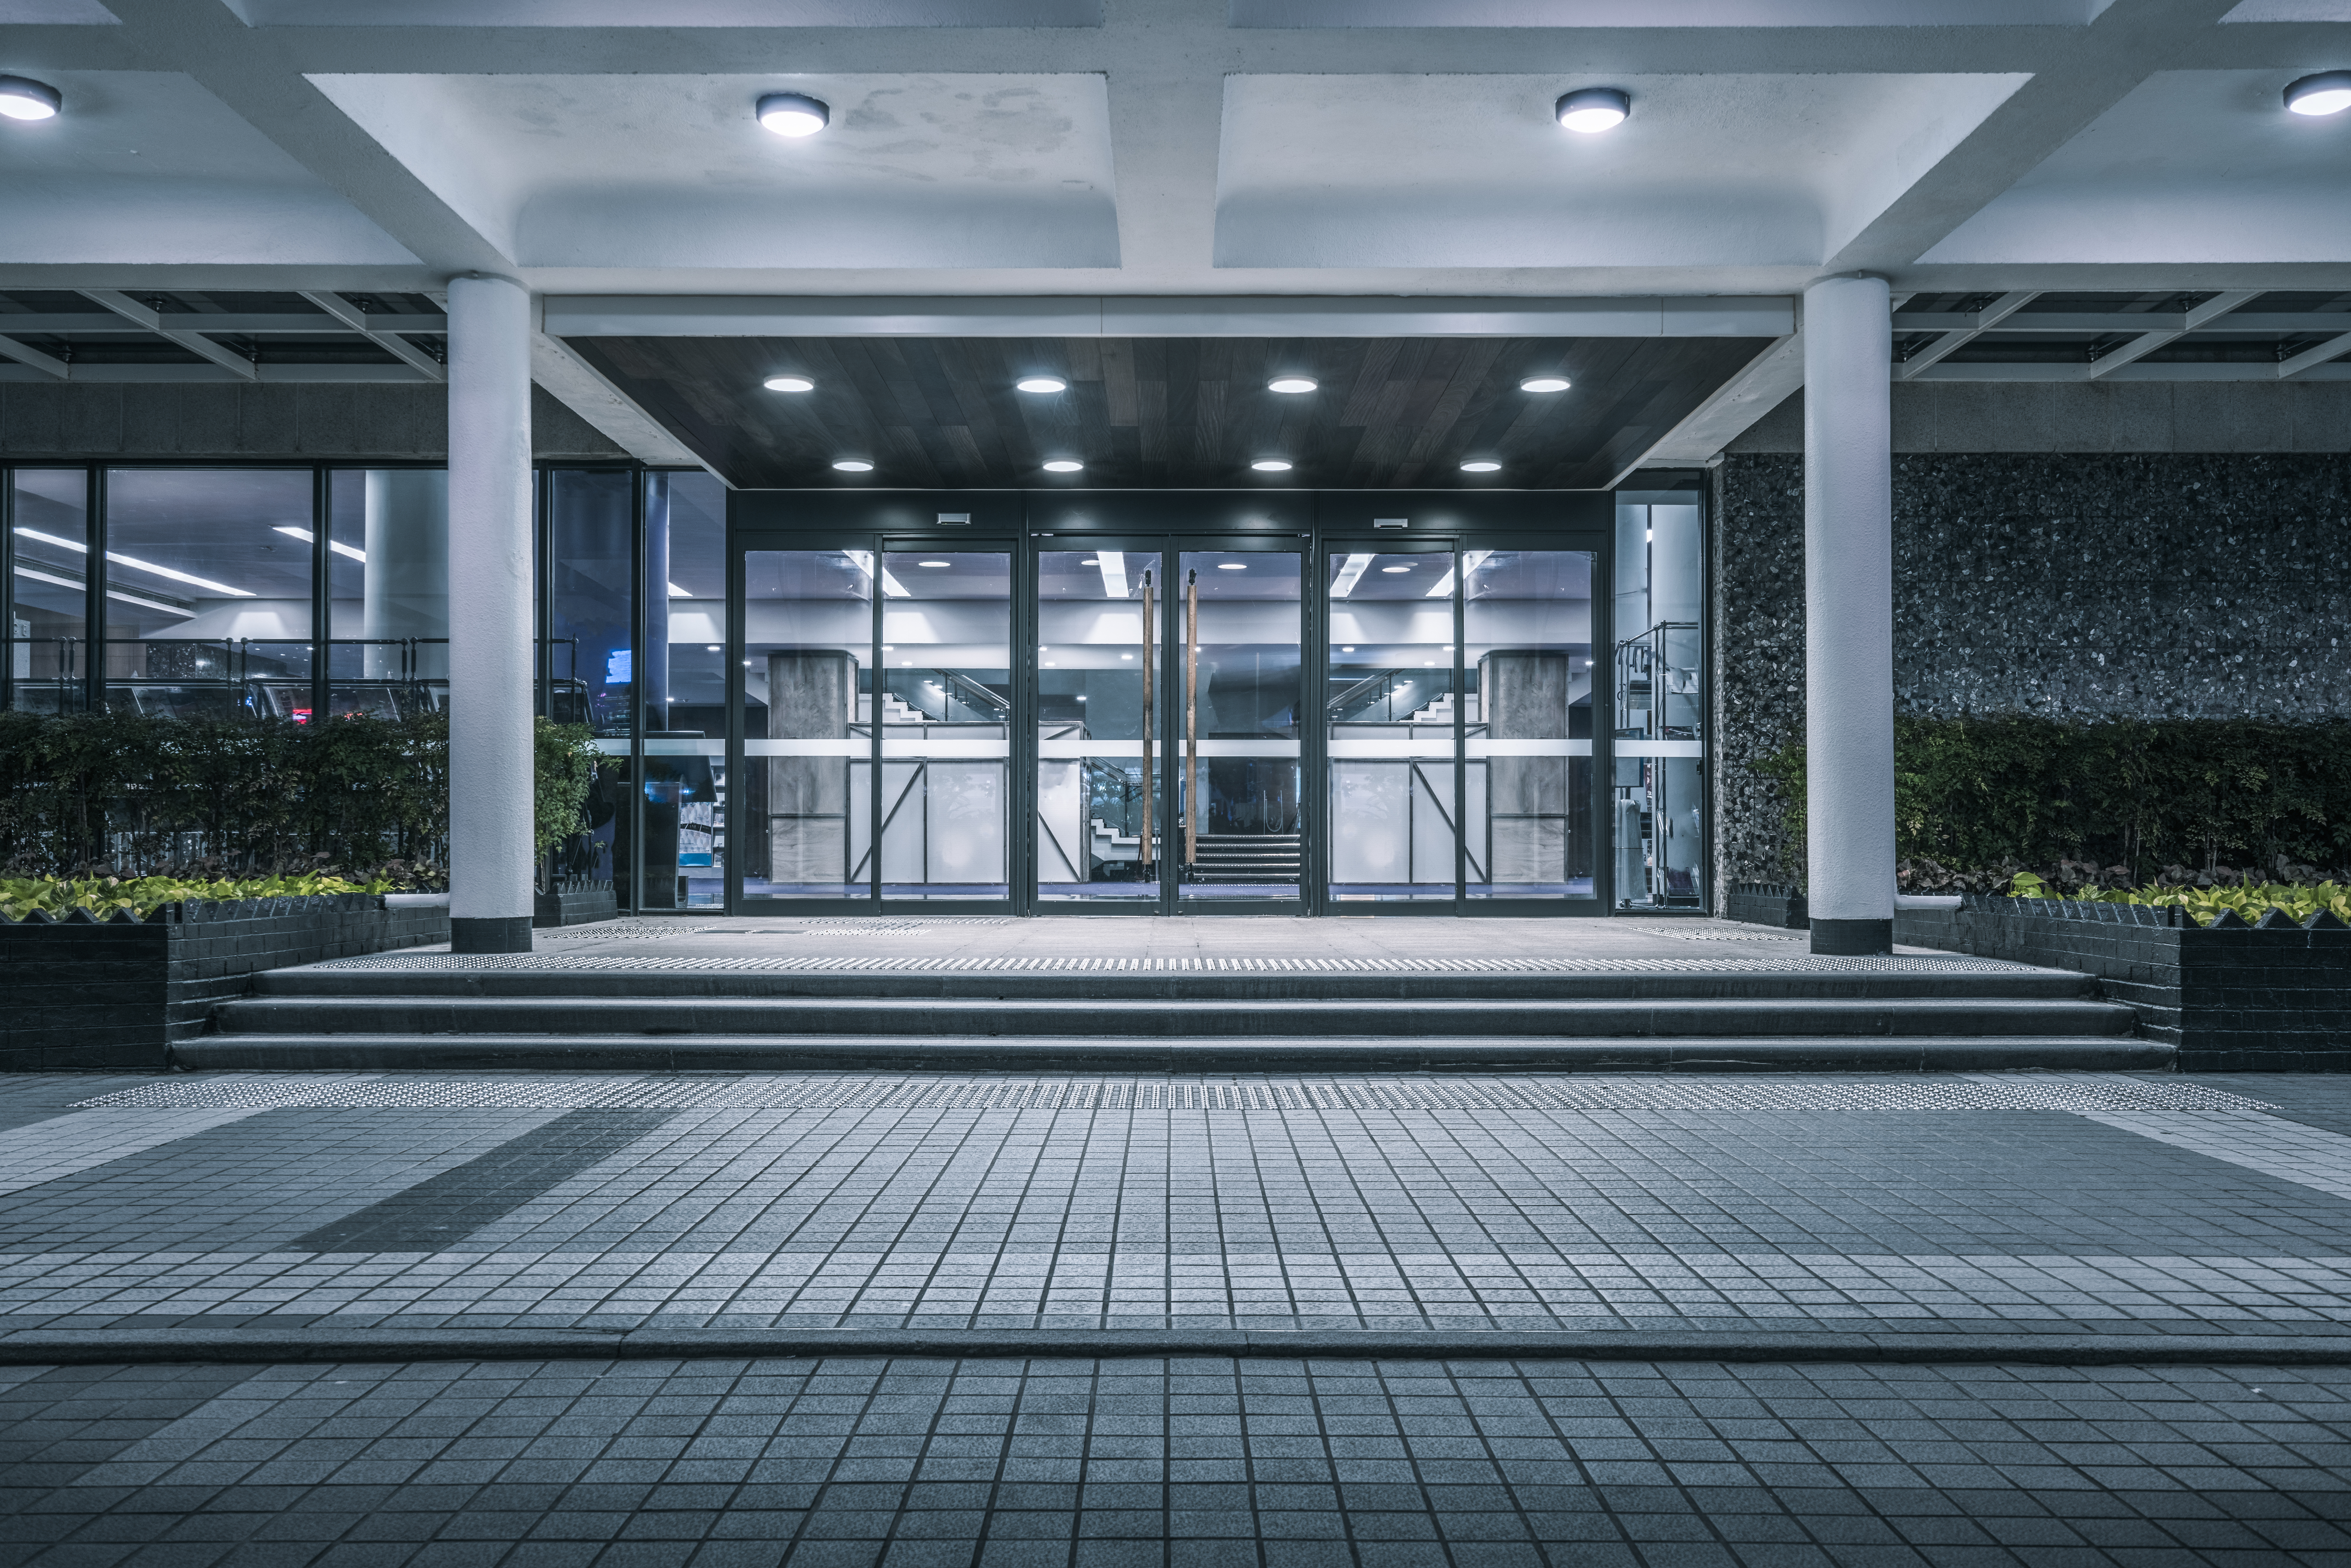 How To Make Access Control Work For Your Business